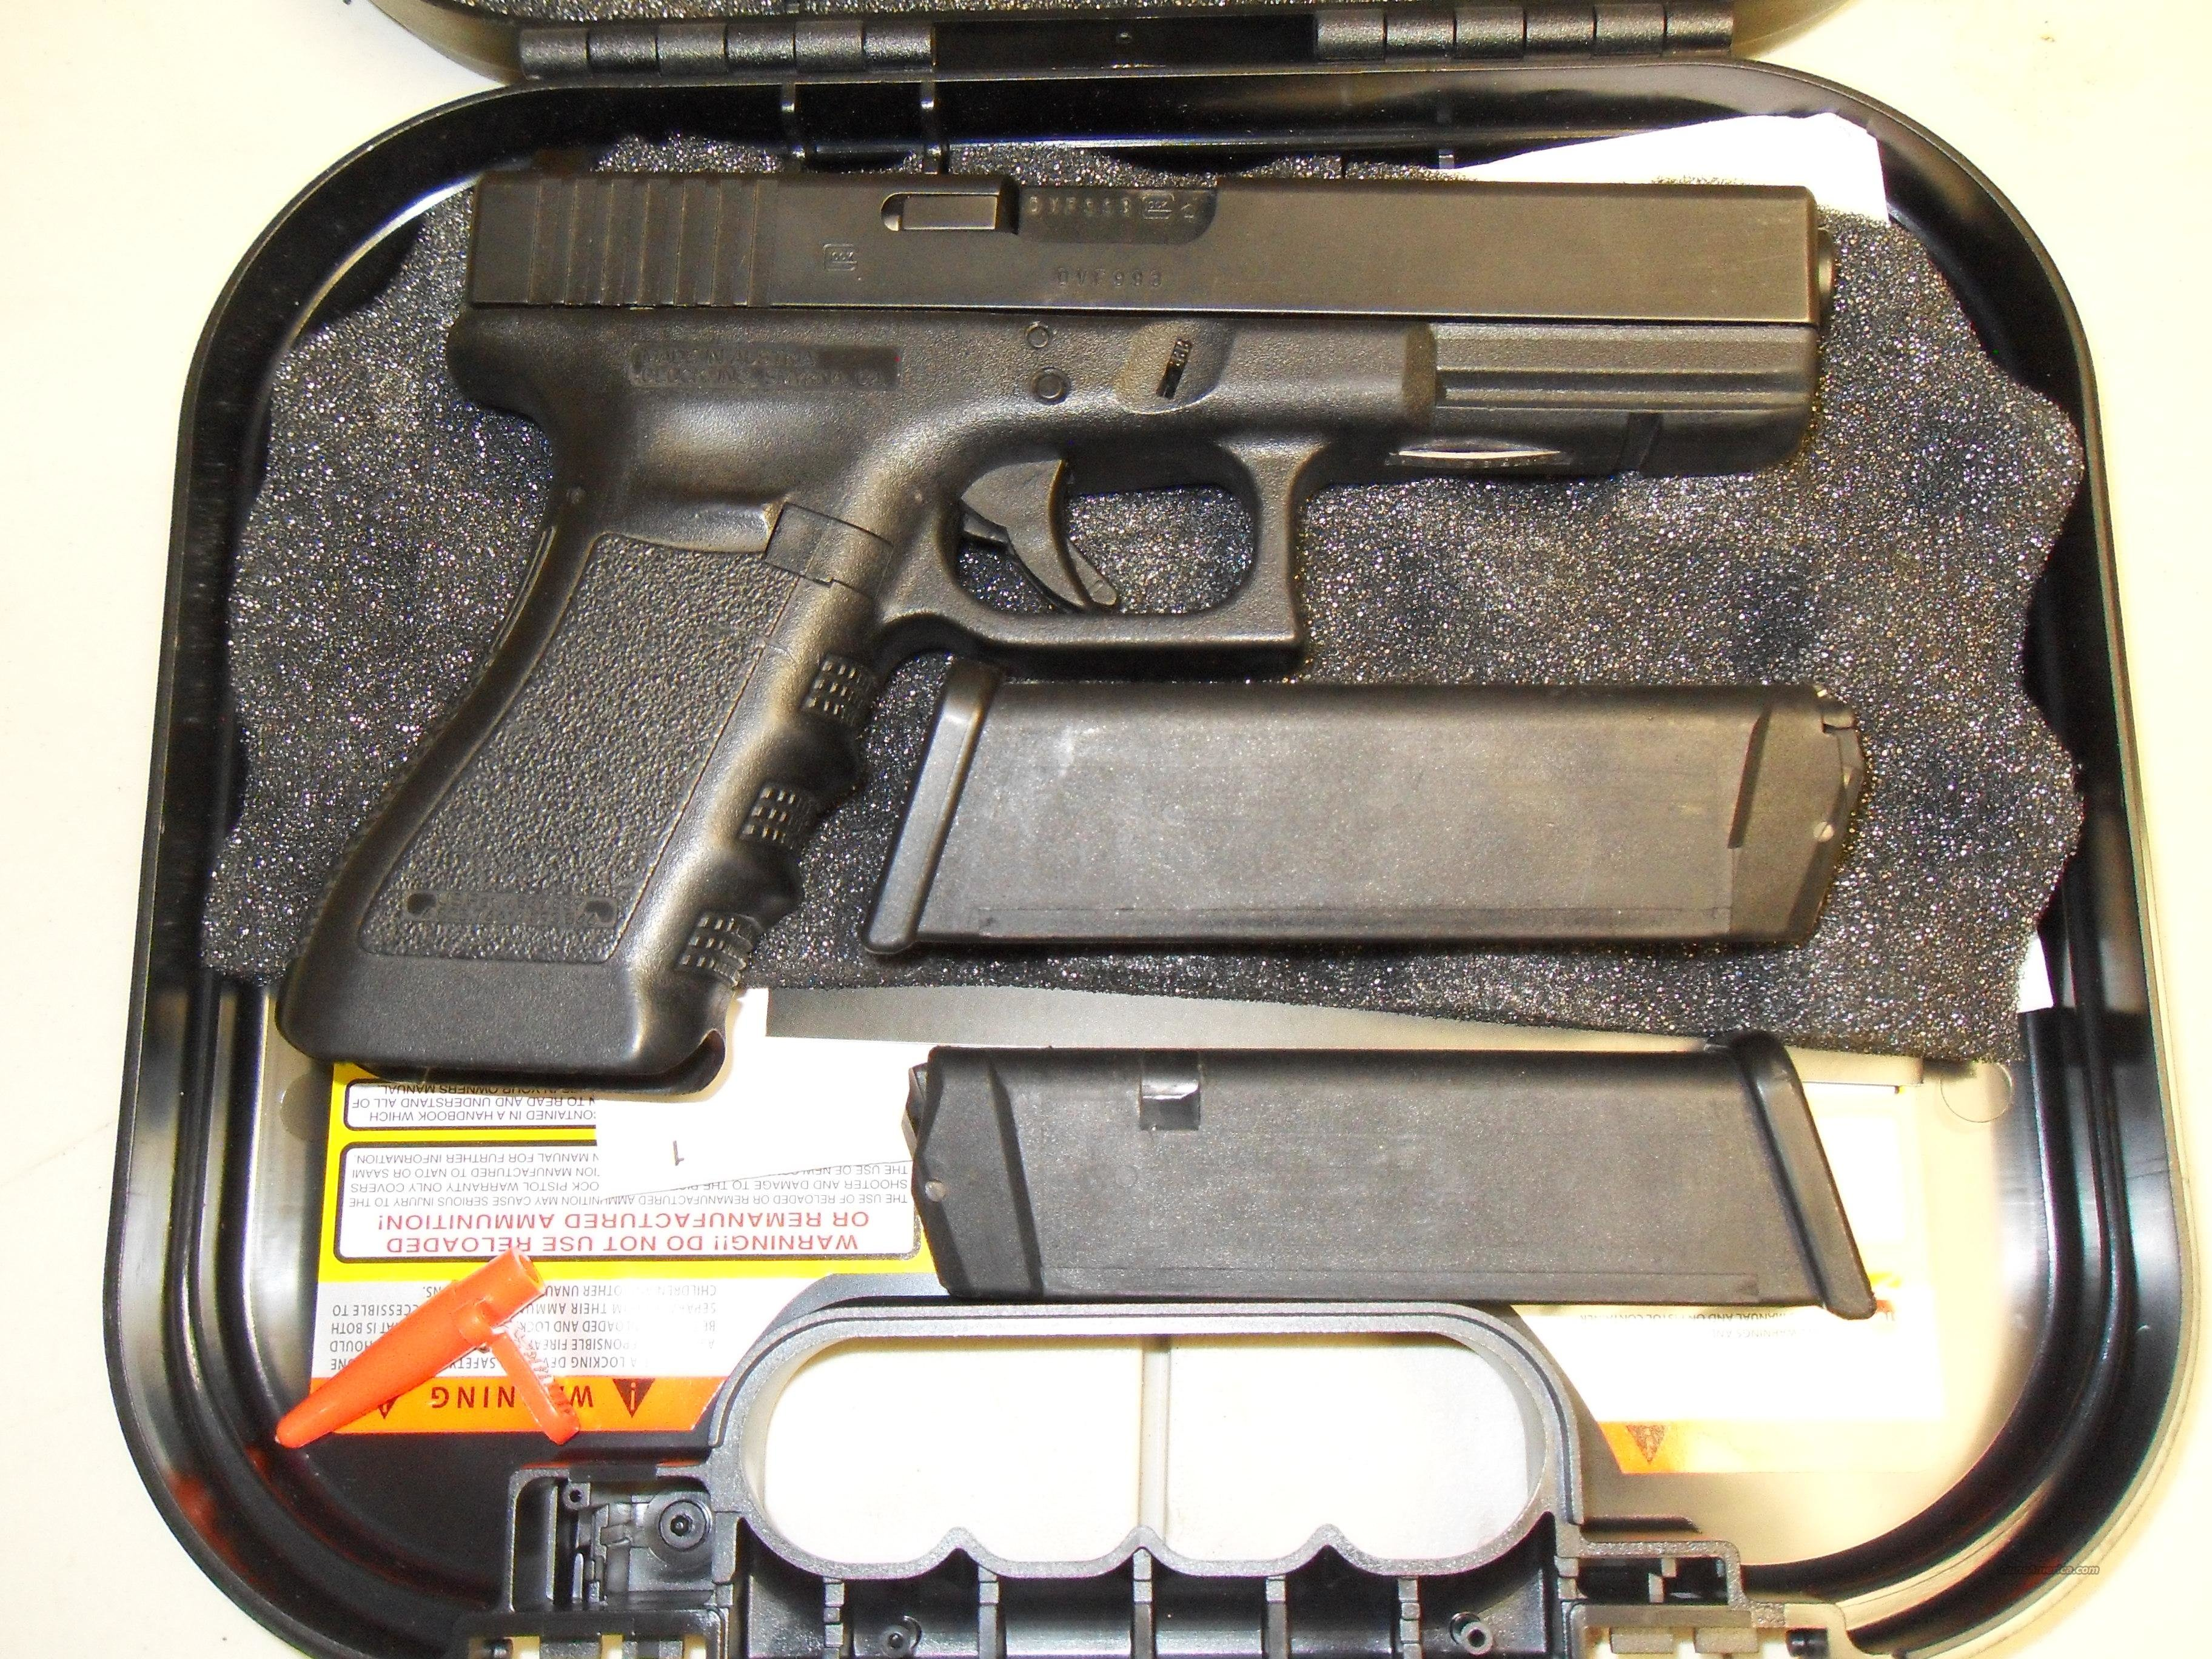 Glock Model 22 Gen 3  Night Sights FREE SHIPPING  Guns > Pistols > Glock Pistols > 22